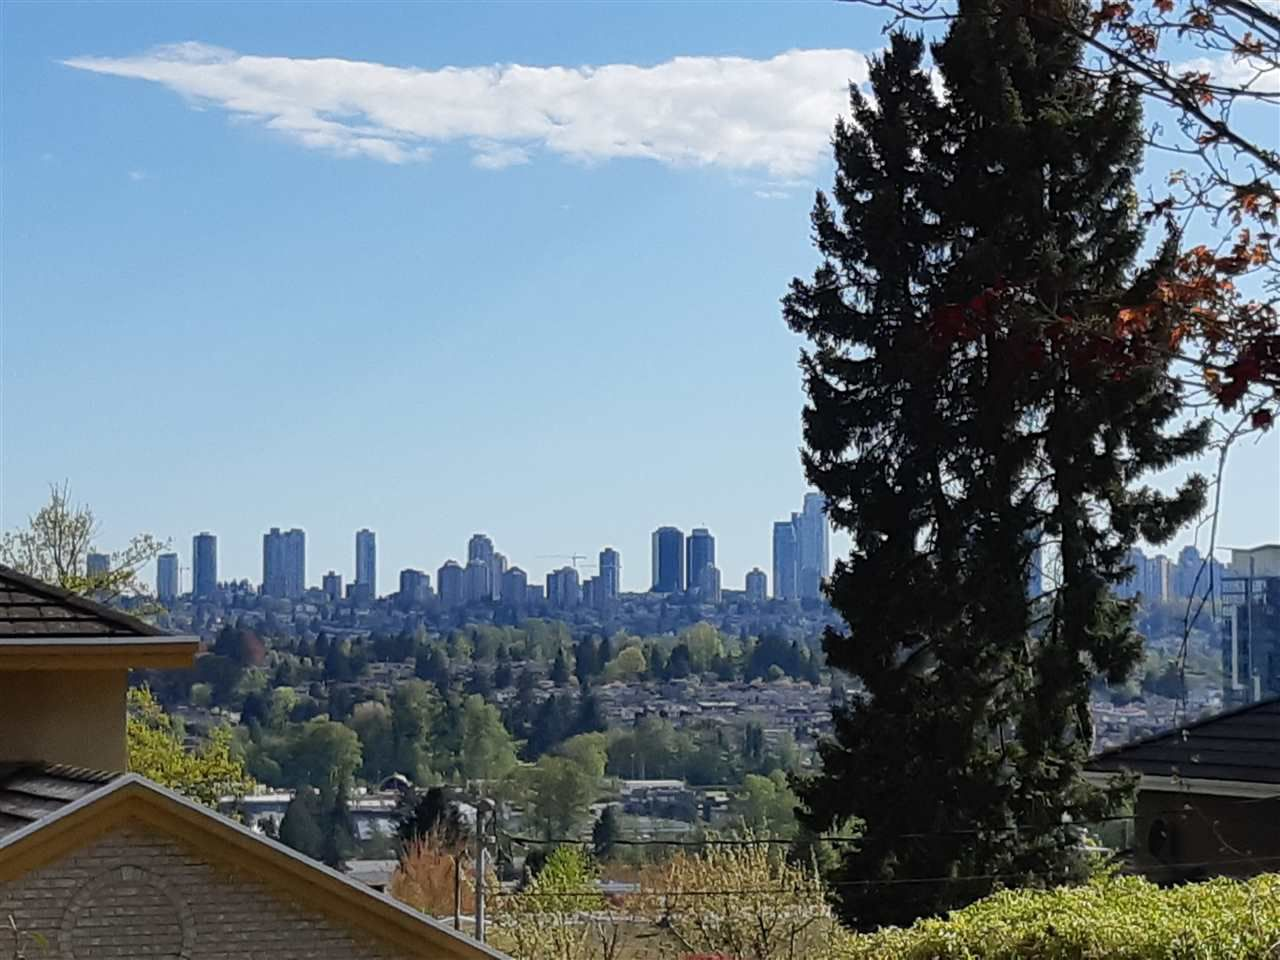 """Main Photo: 6091 GRANT Street in Burnaby: Parkcrest House for sale in """"PARKCREST - KENSINGTON"""" (Burnaby North)  : MLS®# R2379467"""